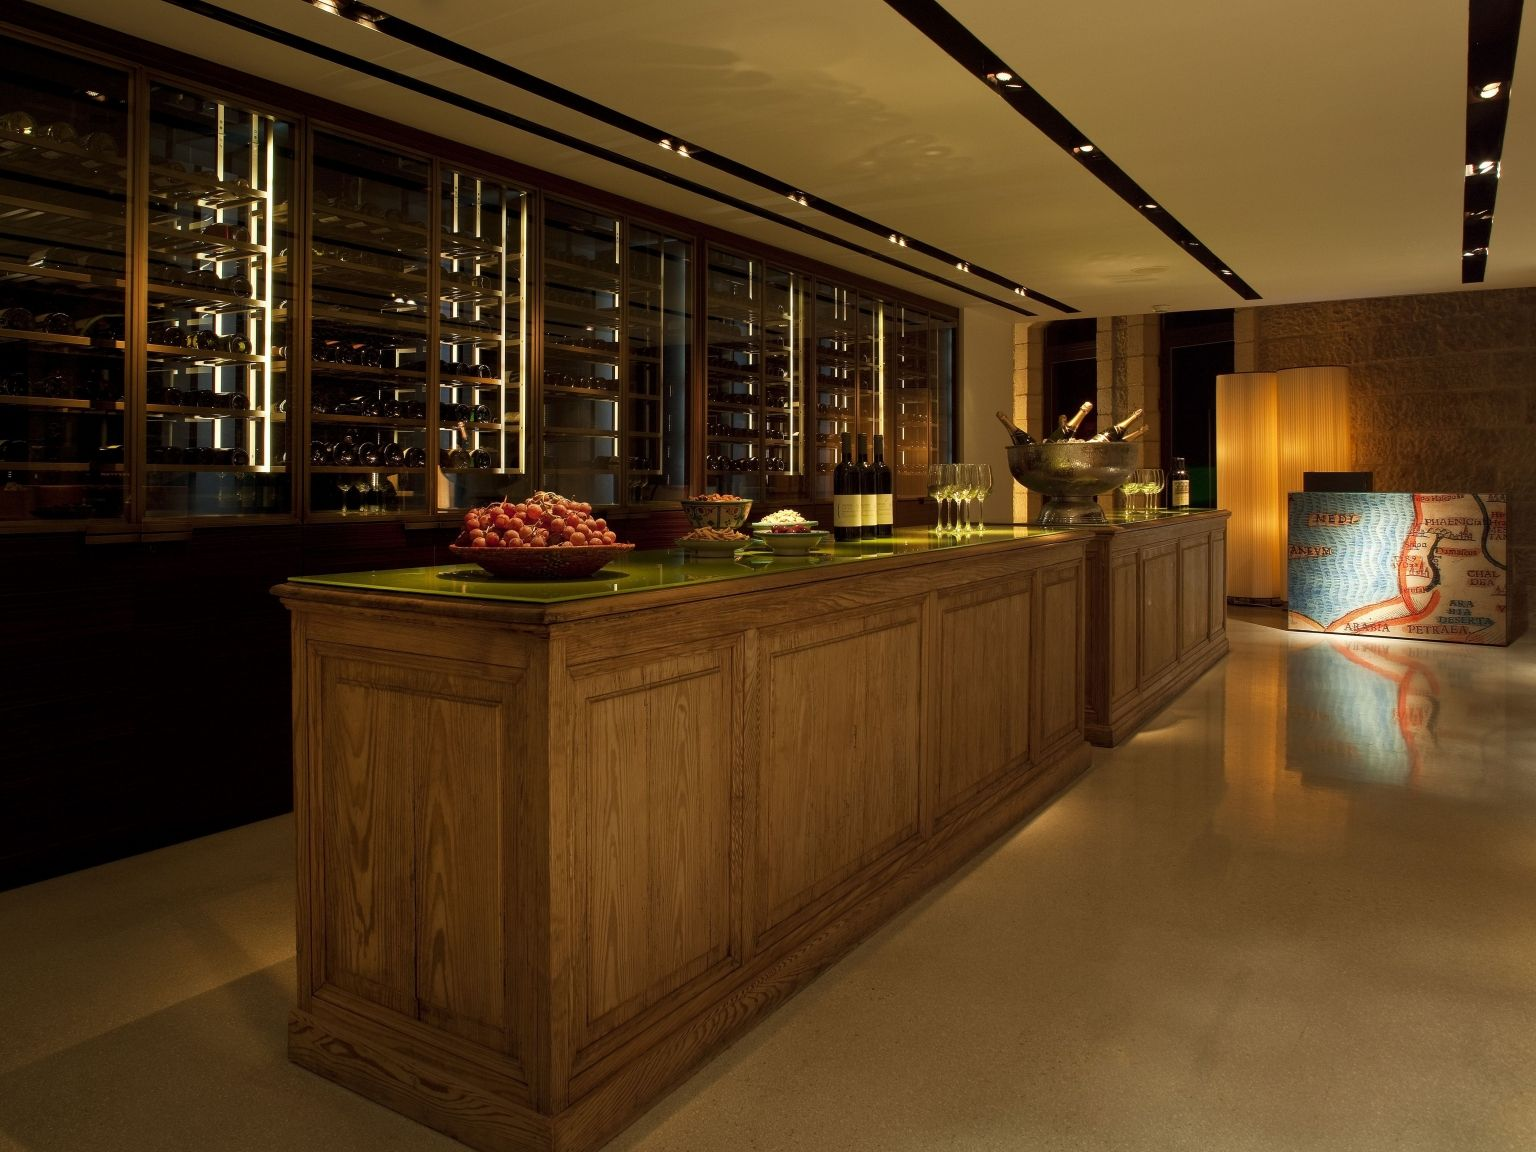 Winery | Mamilla Hotel